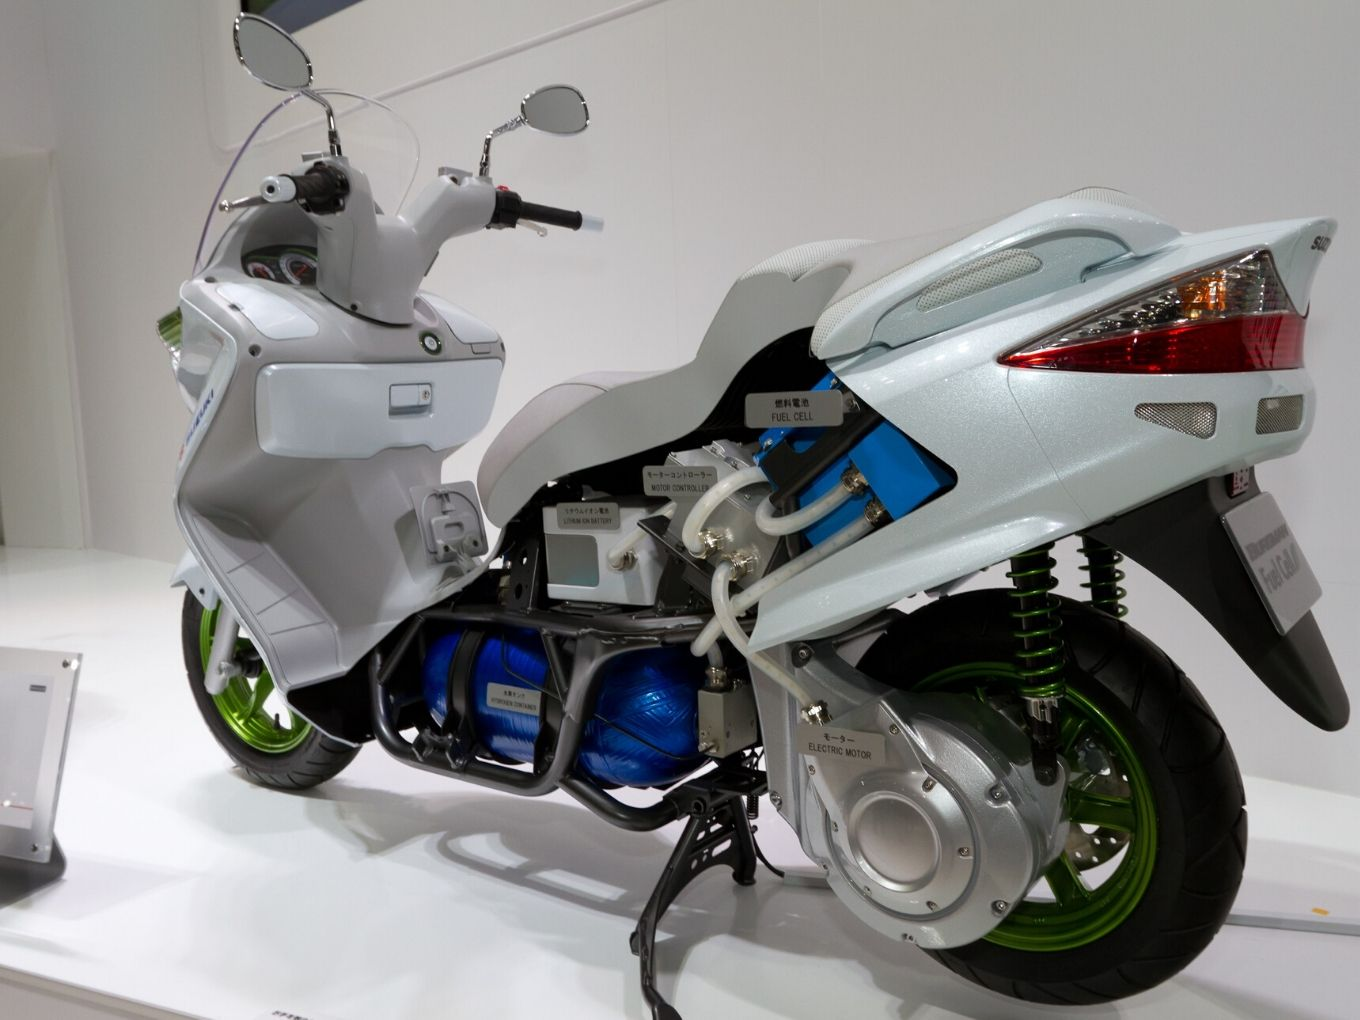 Suzuki Tests India's EV Waters But Rules Out Immediate Launch. Here's Why